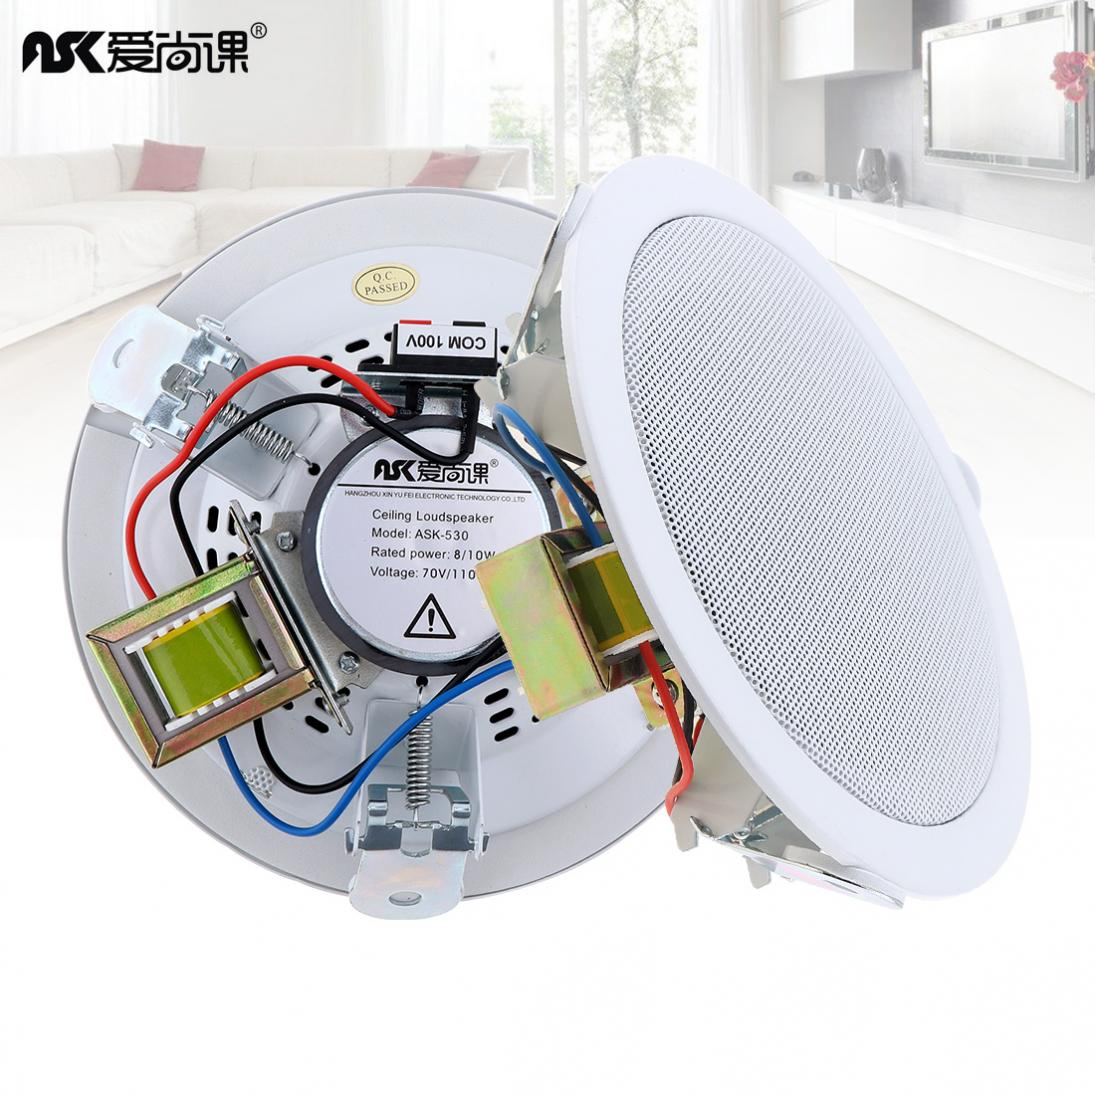 ASK-530 5 Inch 10W  Input USB MP3 Player Ceiling Speaker Public Broadcast  Background Music Speaker for Home / Supermarket